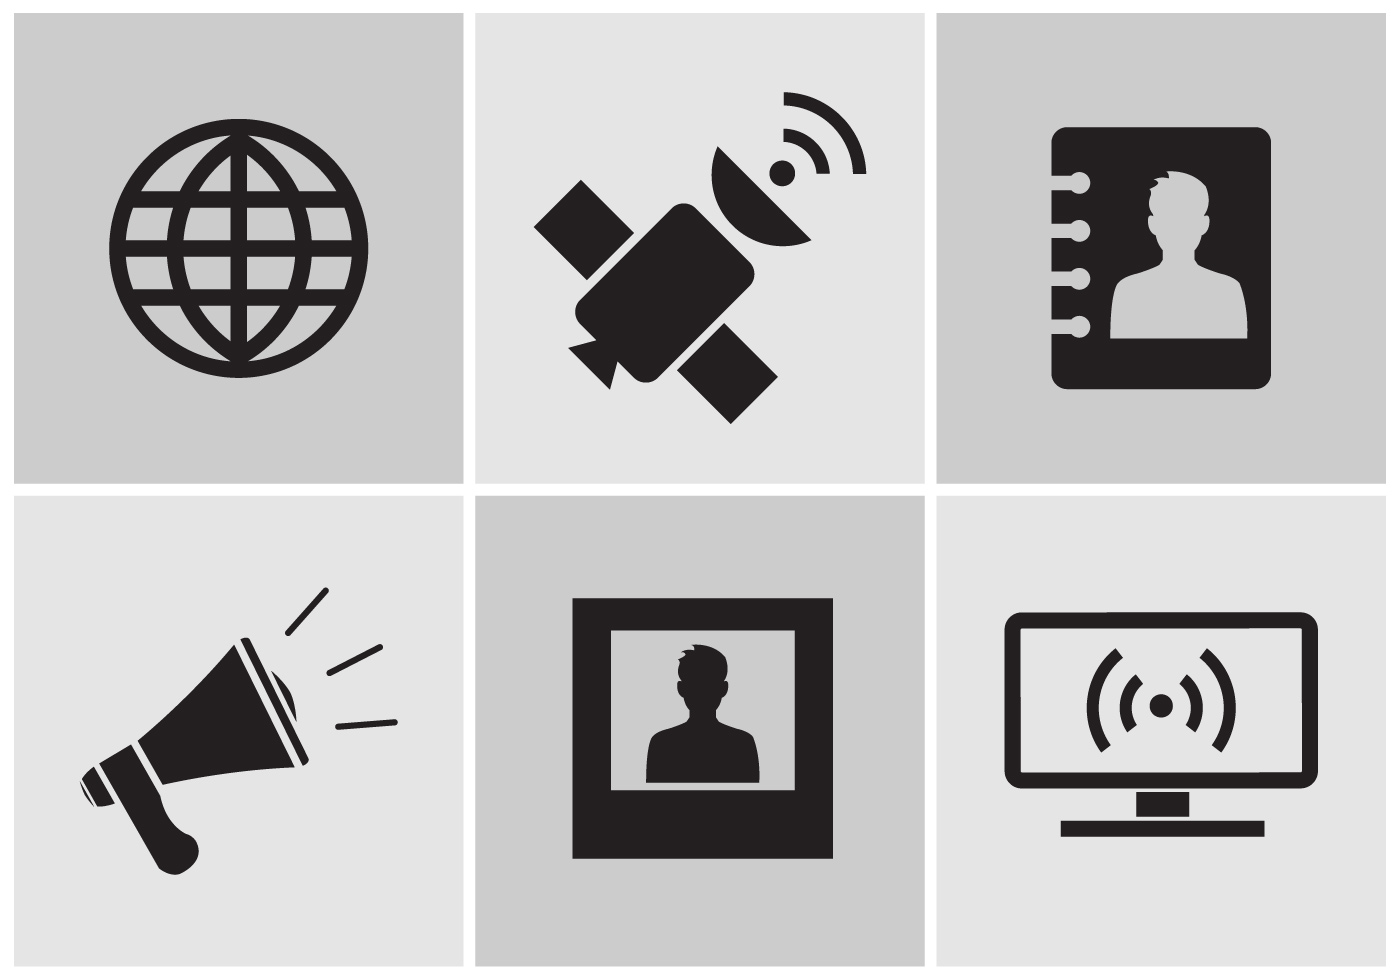 communication icons in vector download free vector art globe icon vector free globe icon vector